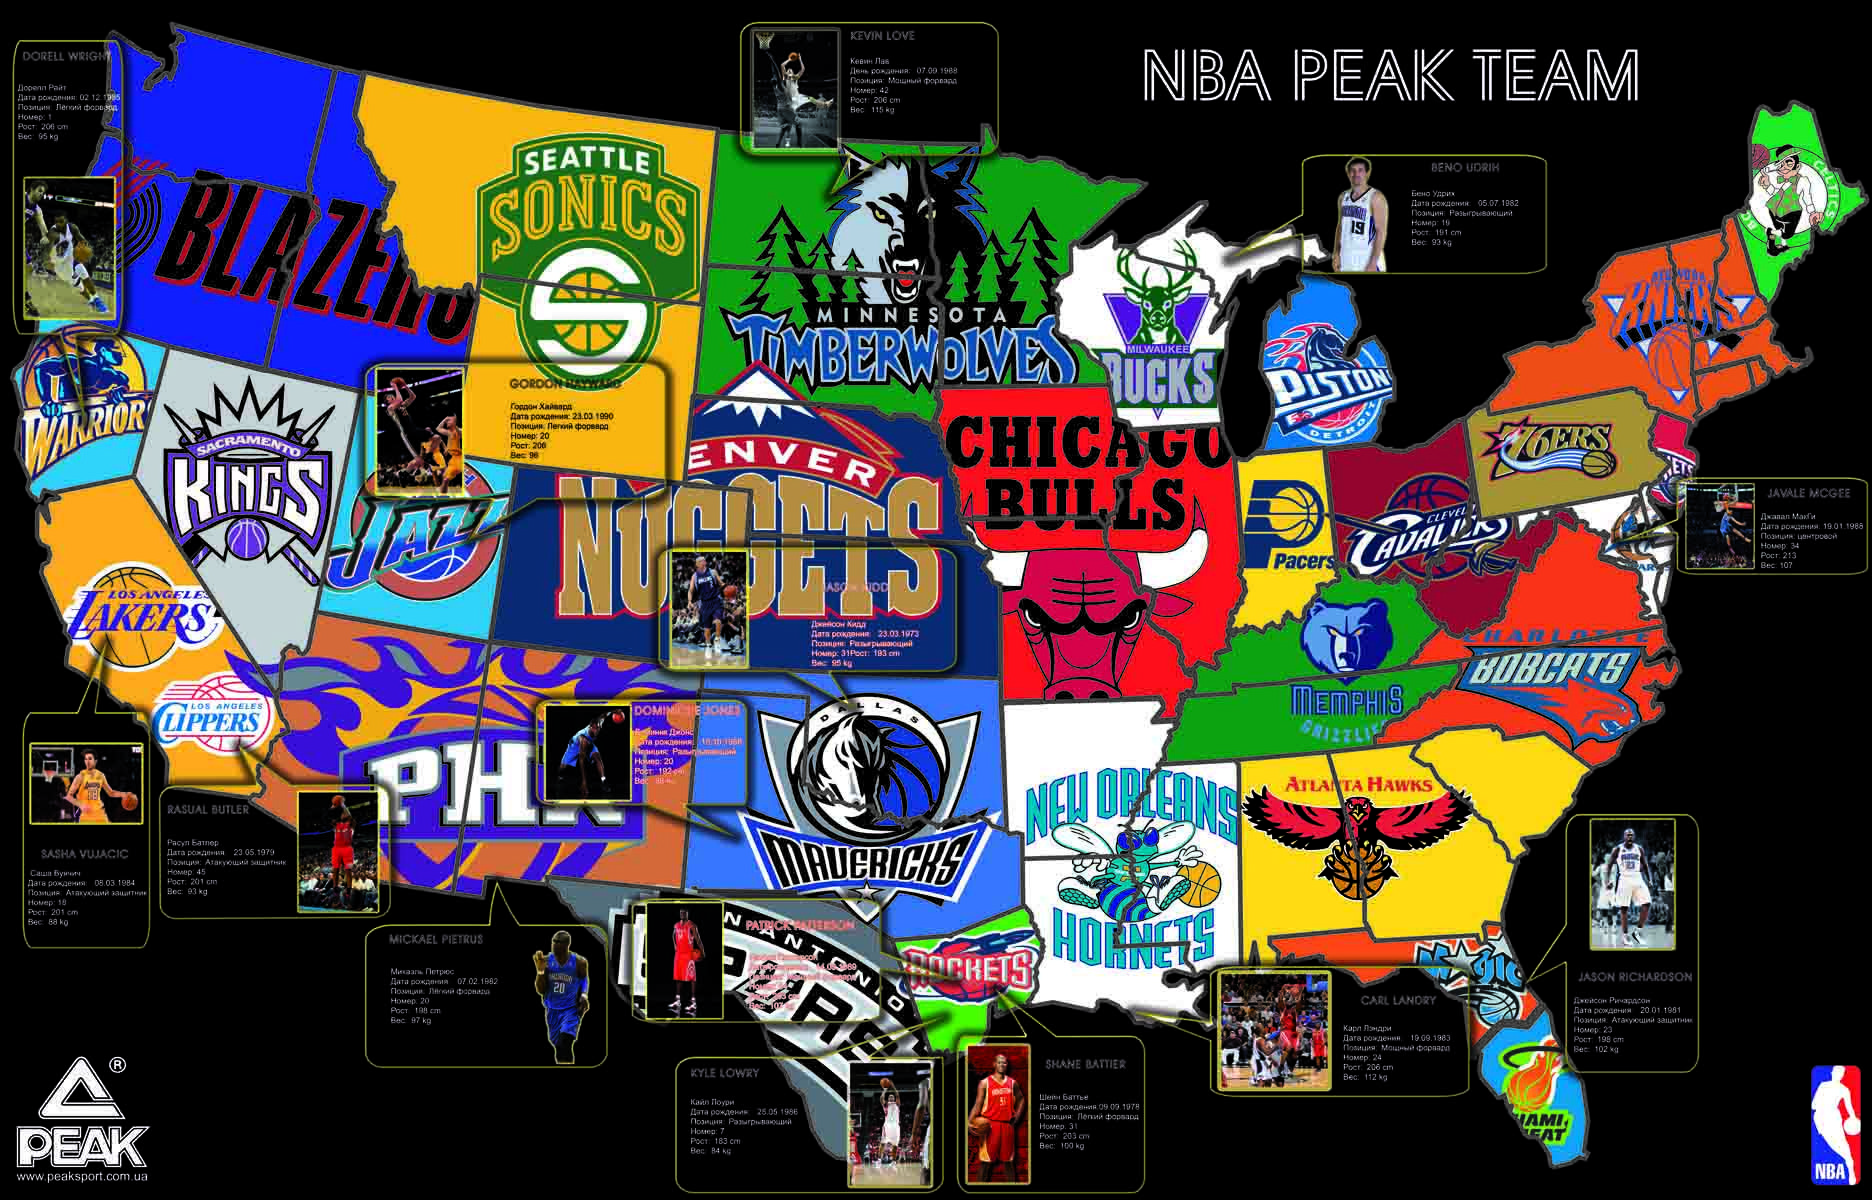 Pin By Hilko Rensel On America On The Map Pinterest - Us map nba teams